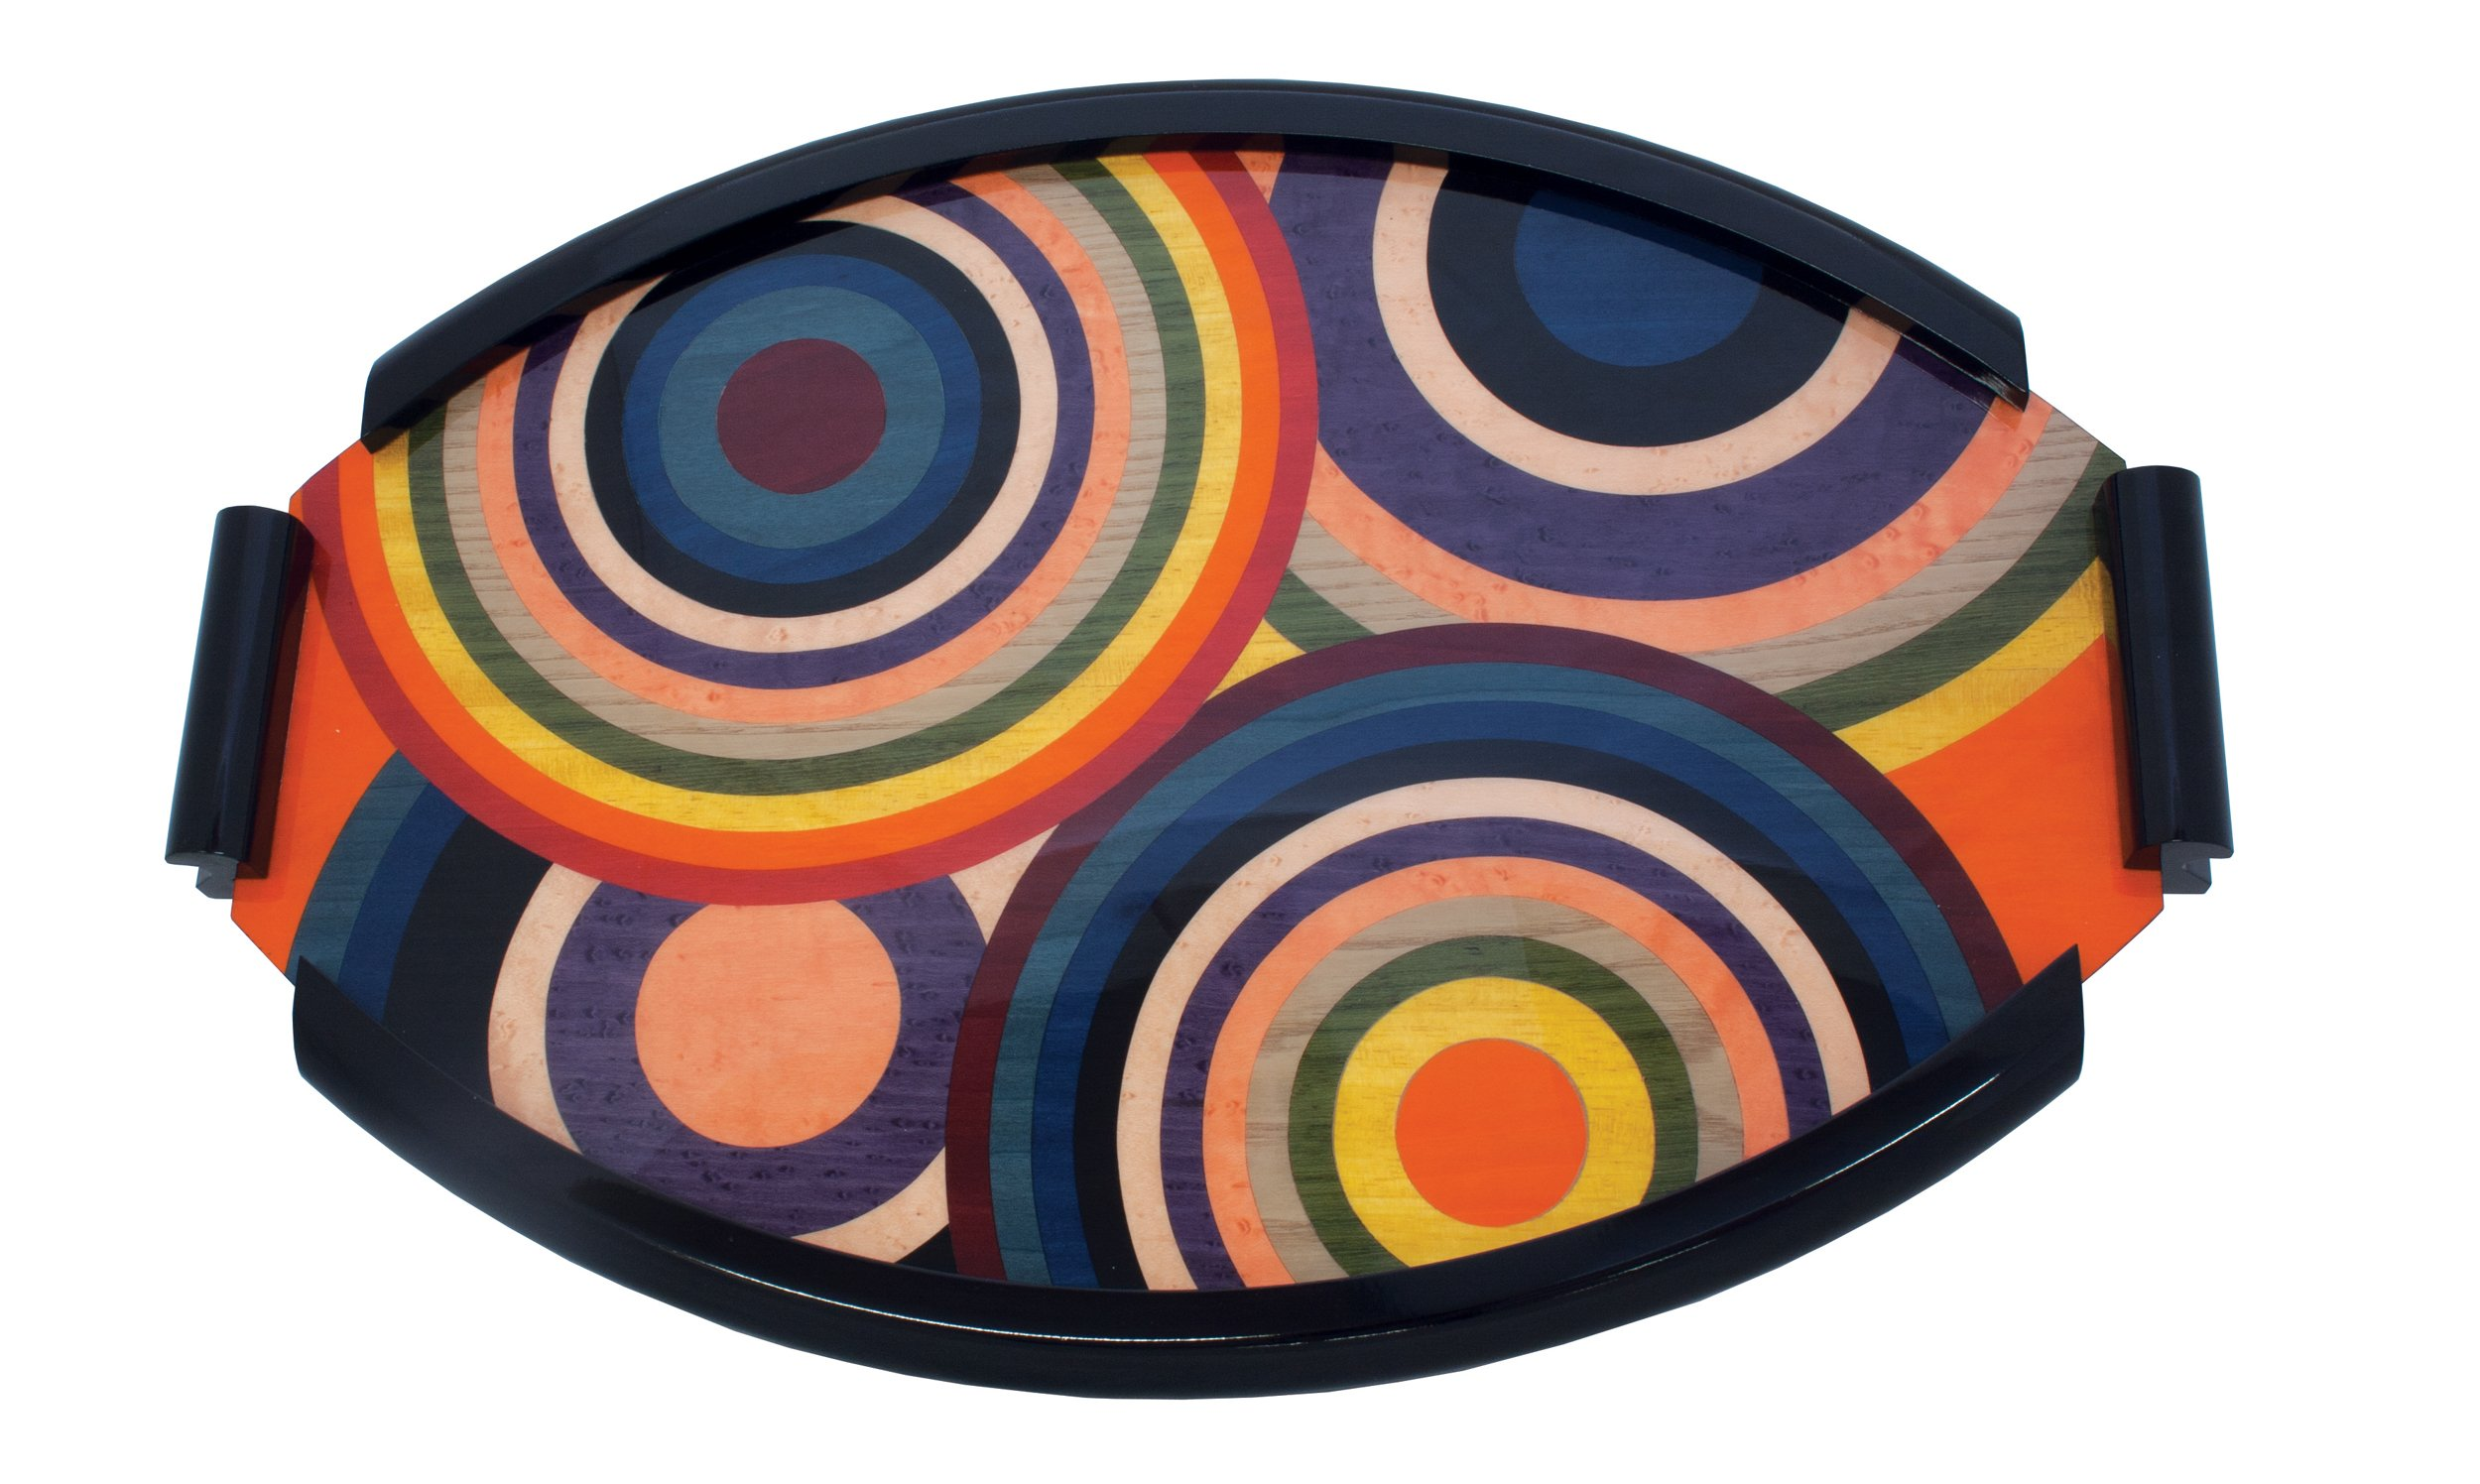 Ercolano Multicolor Circles 44'' x 32'' Inlaid Luxury Jewelry Vanity Tray Made In Italy